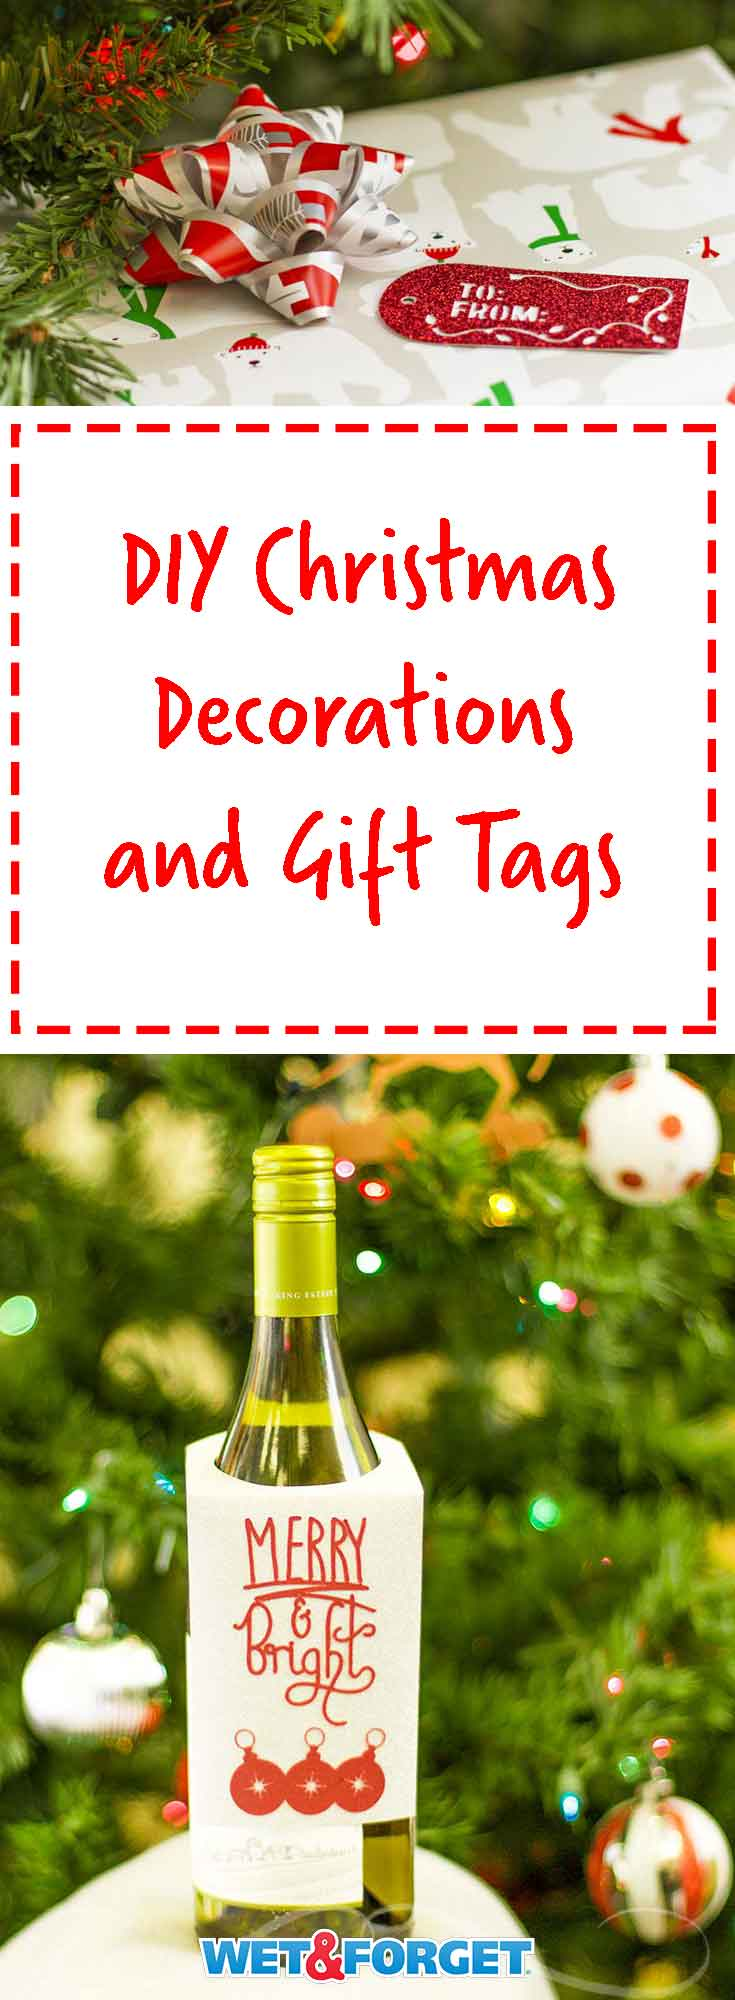 diy-christmas-decorations-and-gift-tags-pinterest